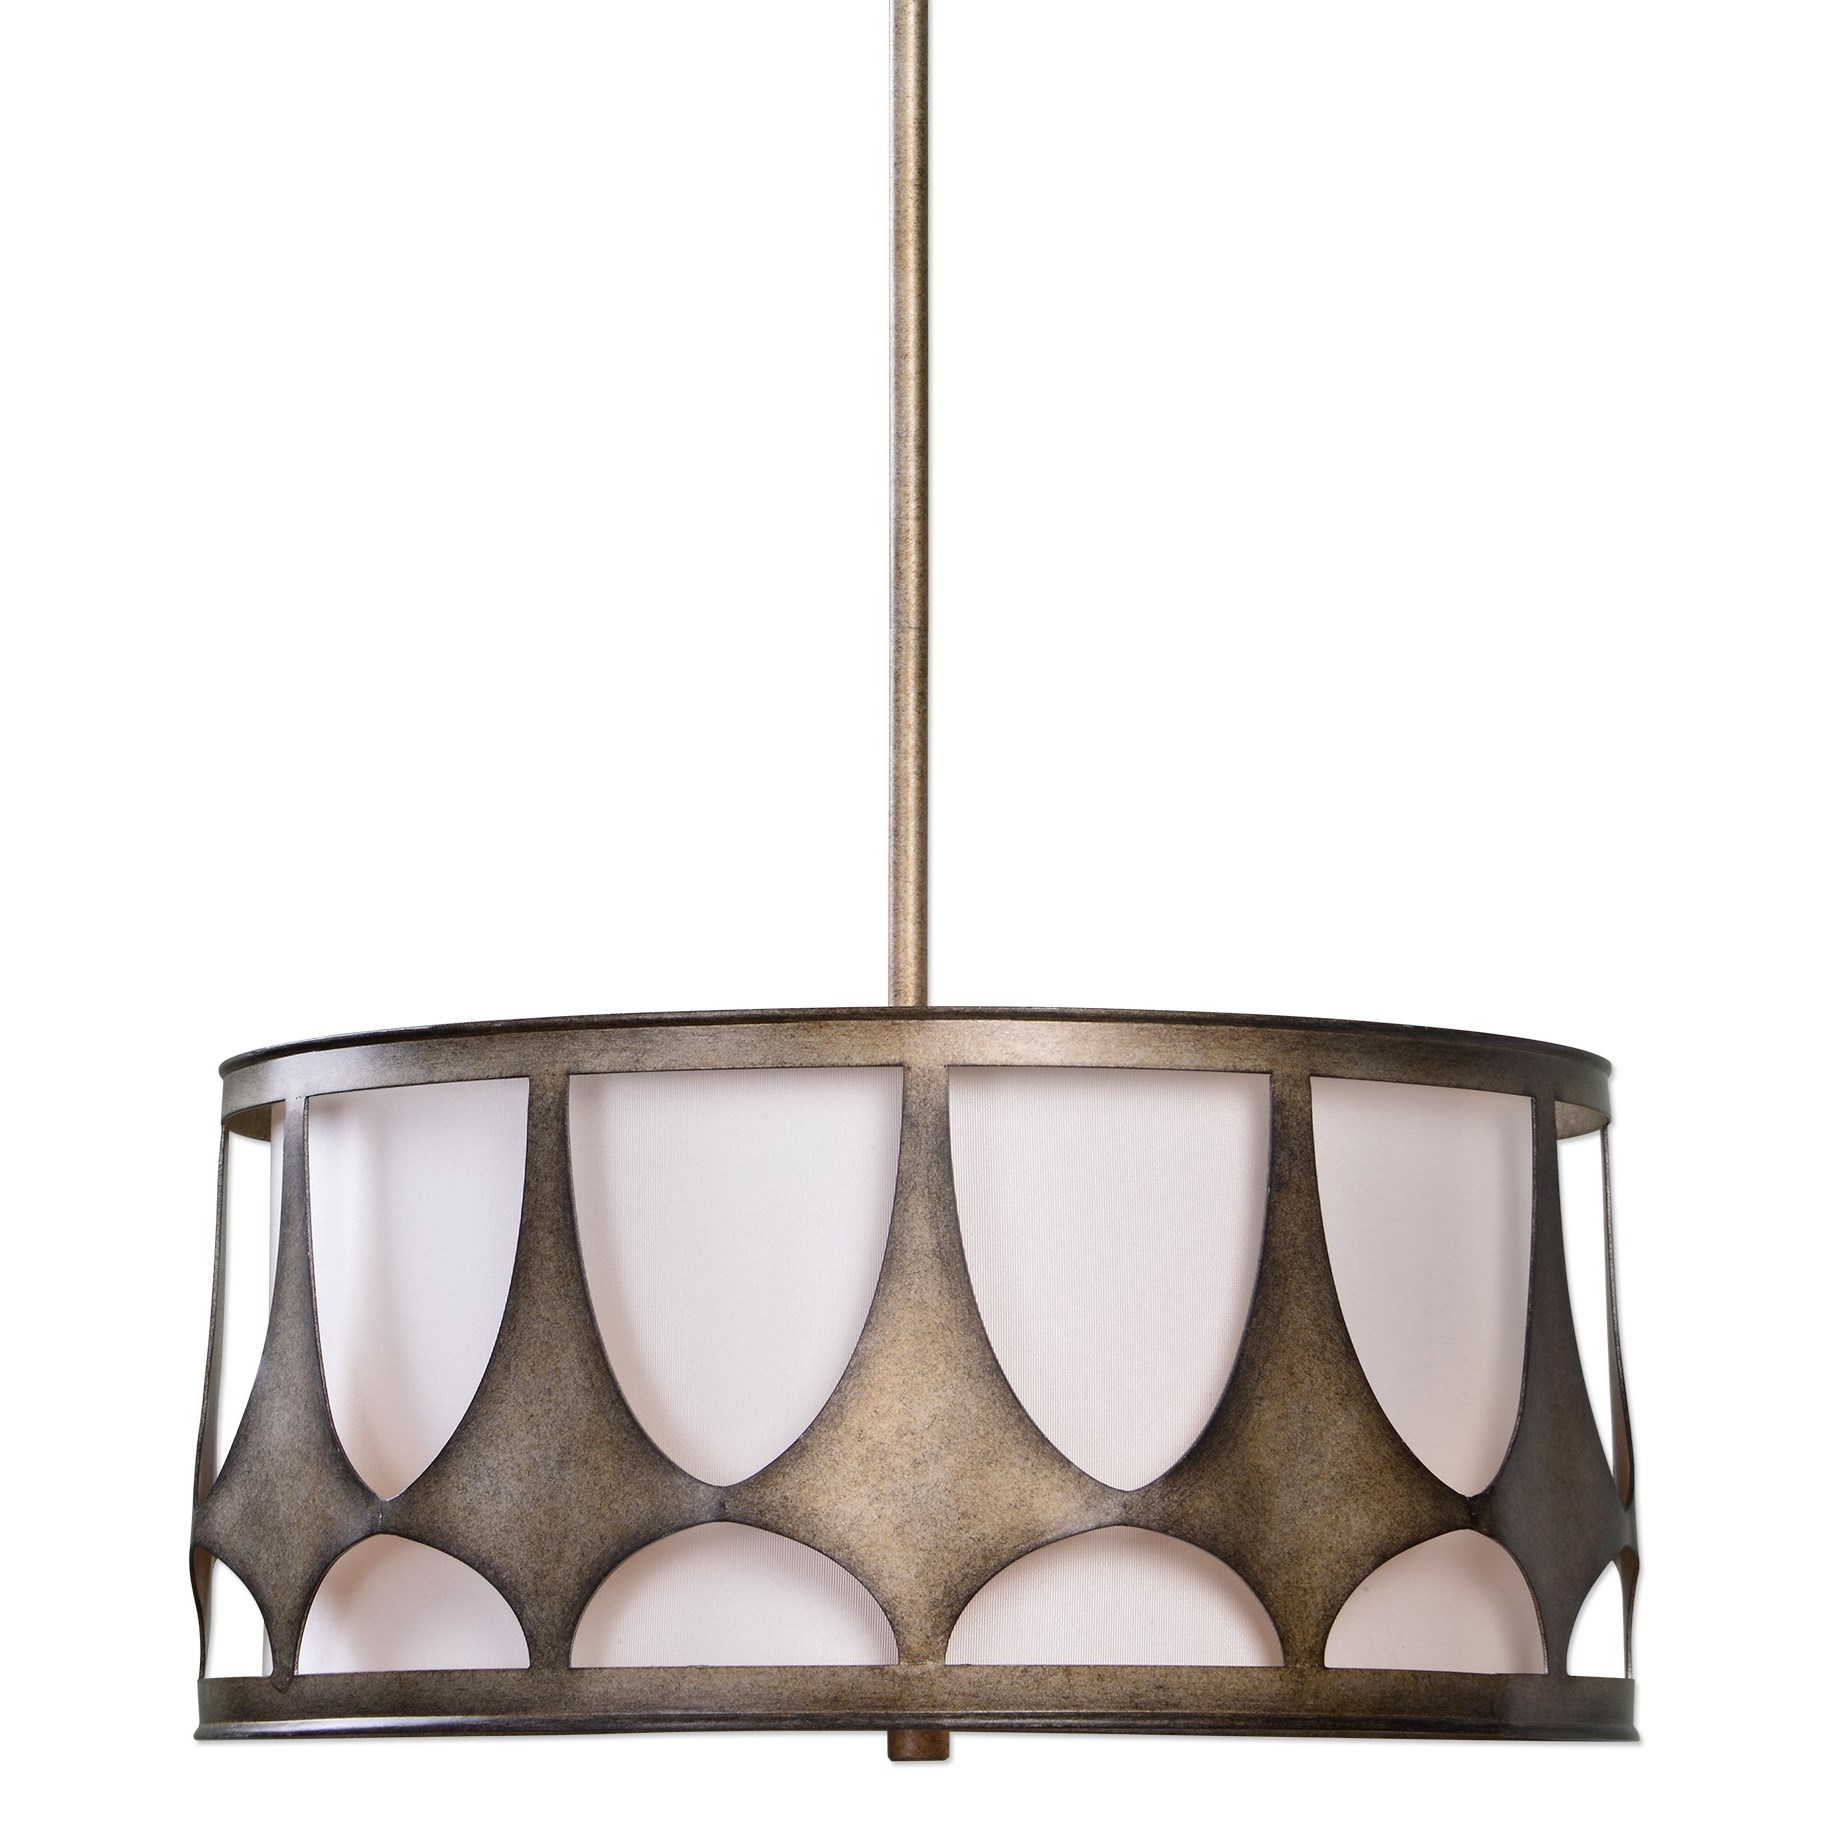 Uttermost Lighting Fixtures Ingevald 4 Light Drum Pendant - Item Number: 22089